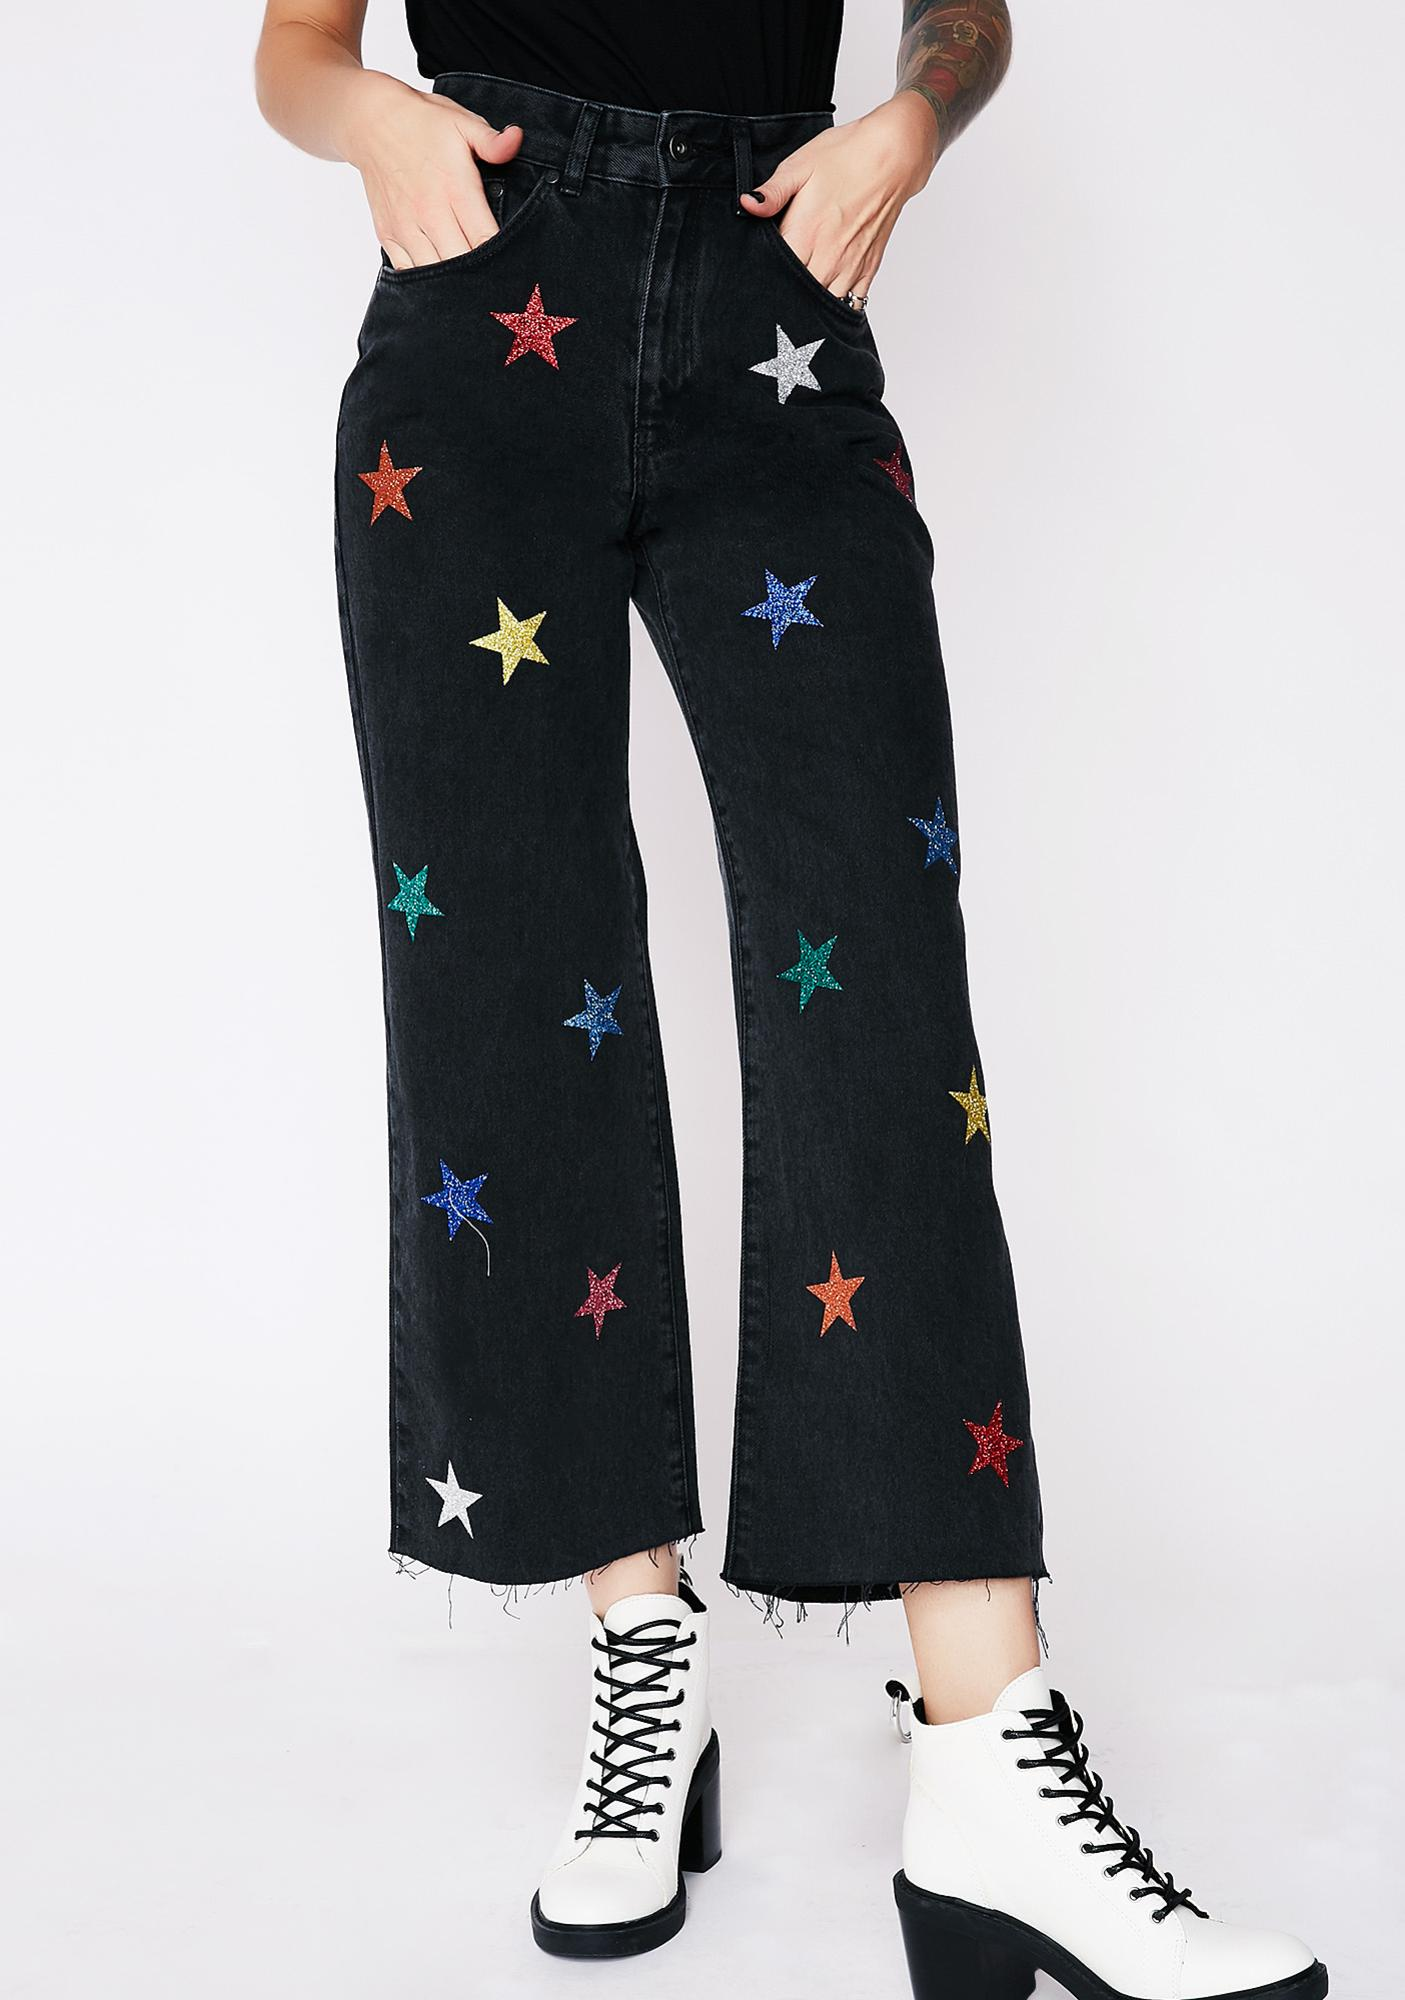 The Ragged Priest Galaxy Jeans